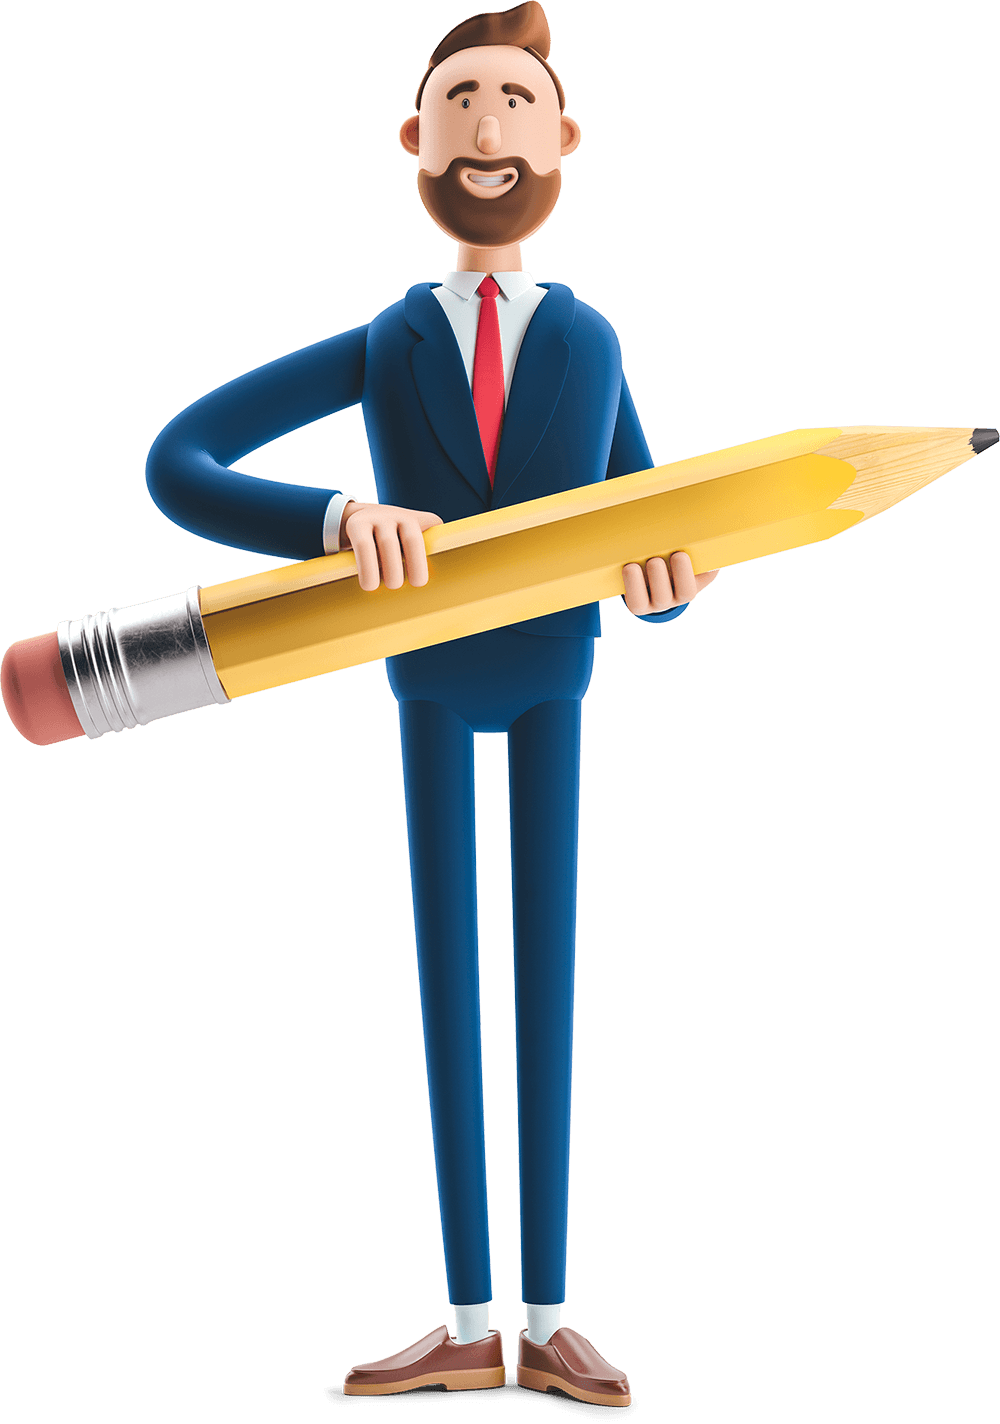 Billy holding a giant pencil